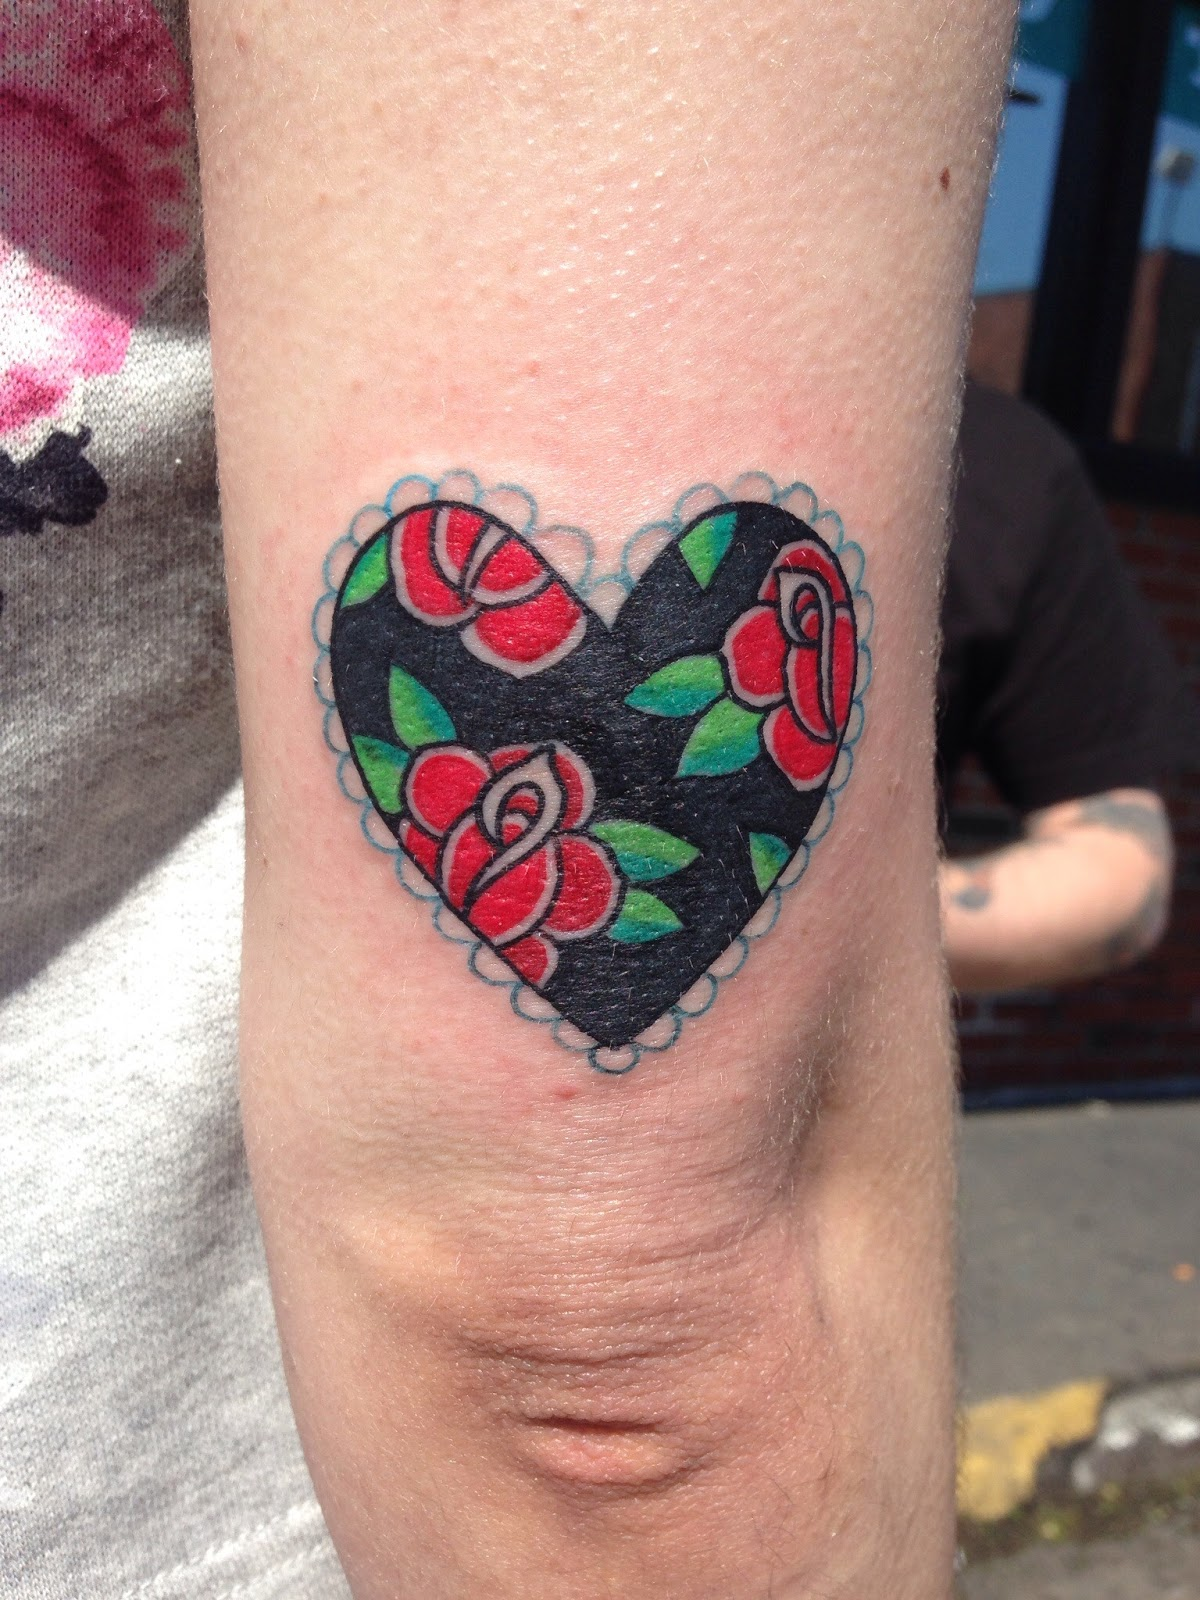 Amazing Tattoos Heart Beat With Dates: 15 Amazing Heart Tattoo Ideas